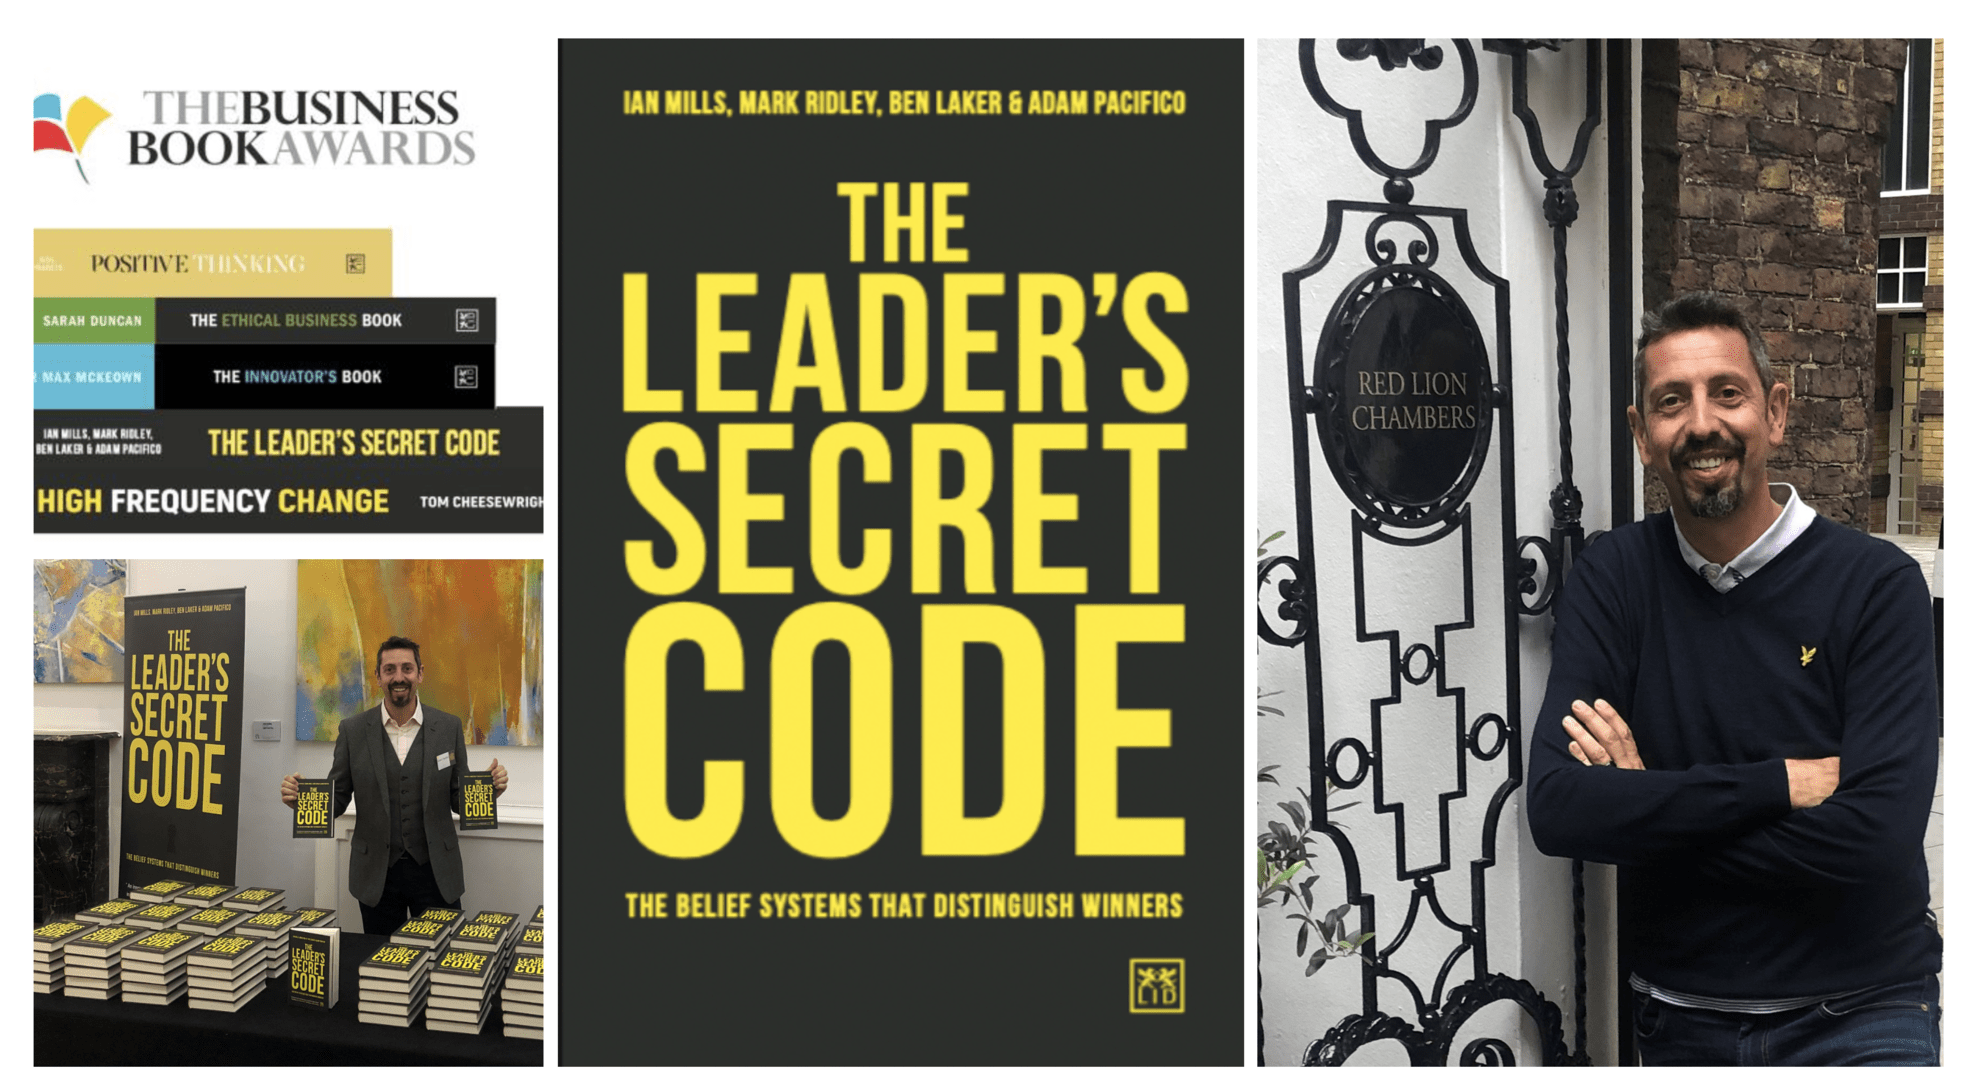 """RLC door tenant Adam Pacifico has new book """"The Leader's Secret Code"""" shortlisted for Business Book of the Year Award"""